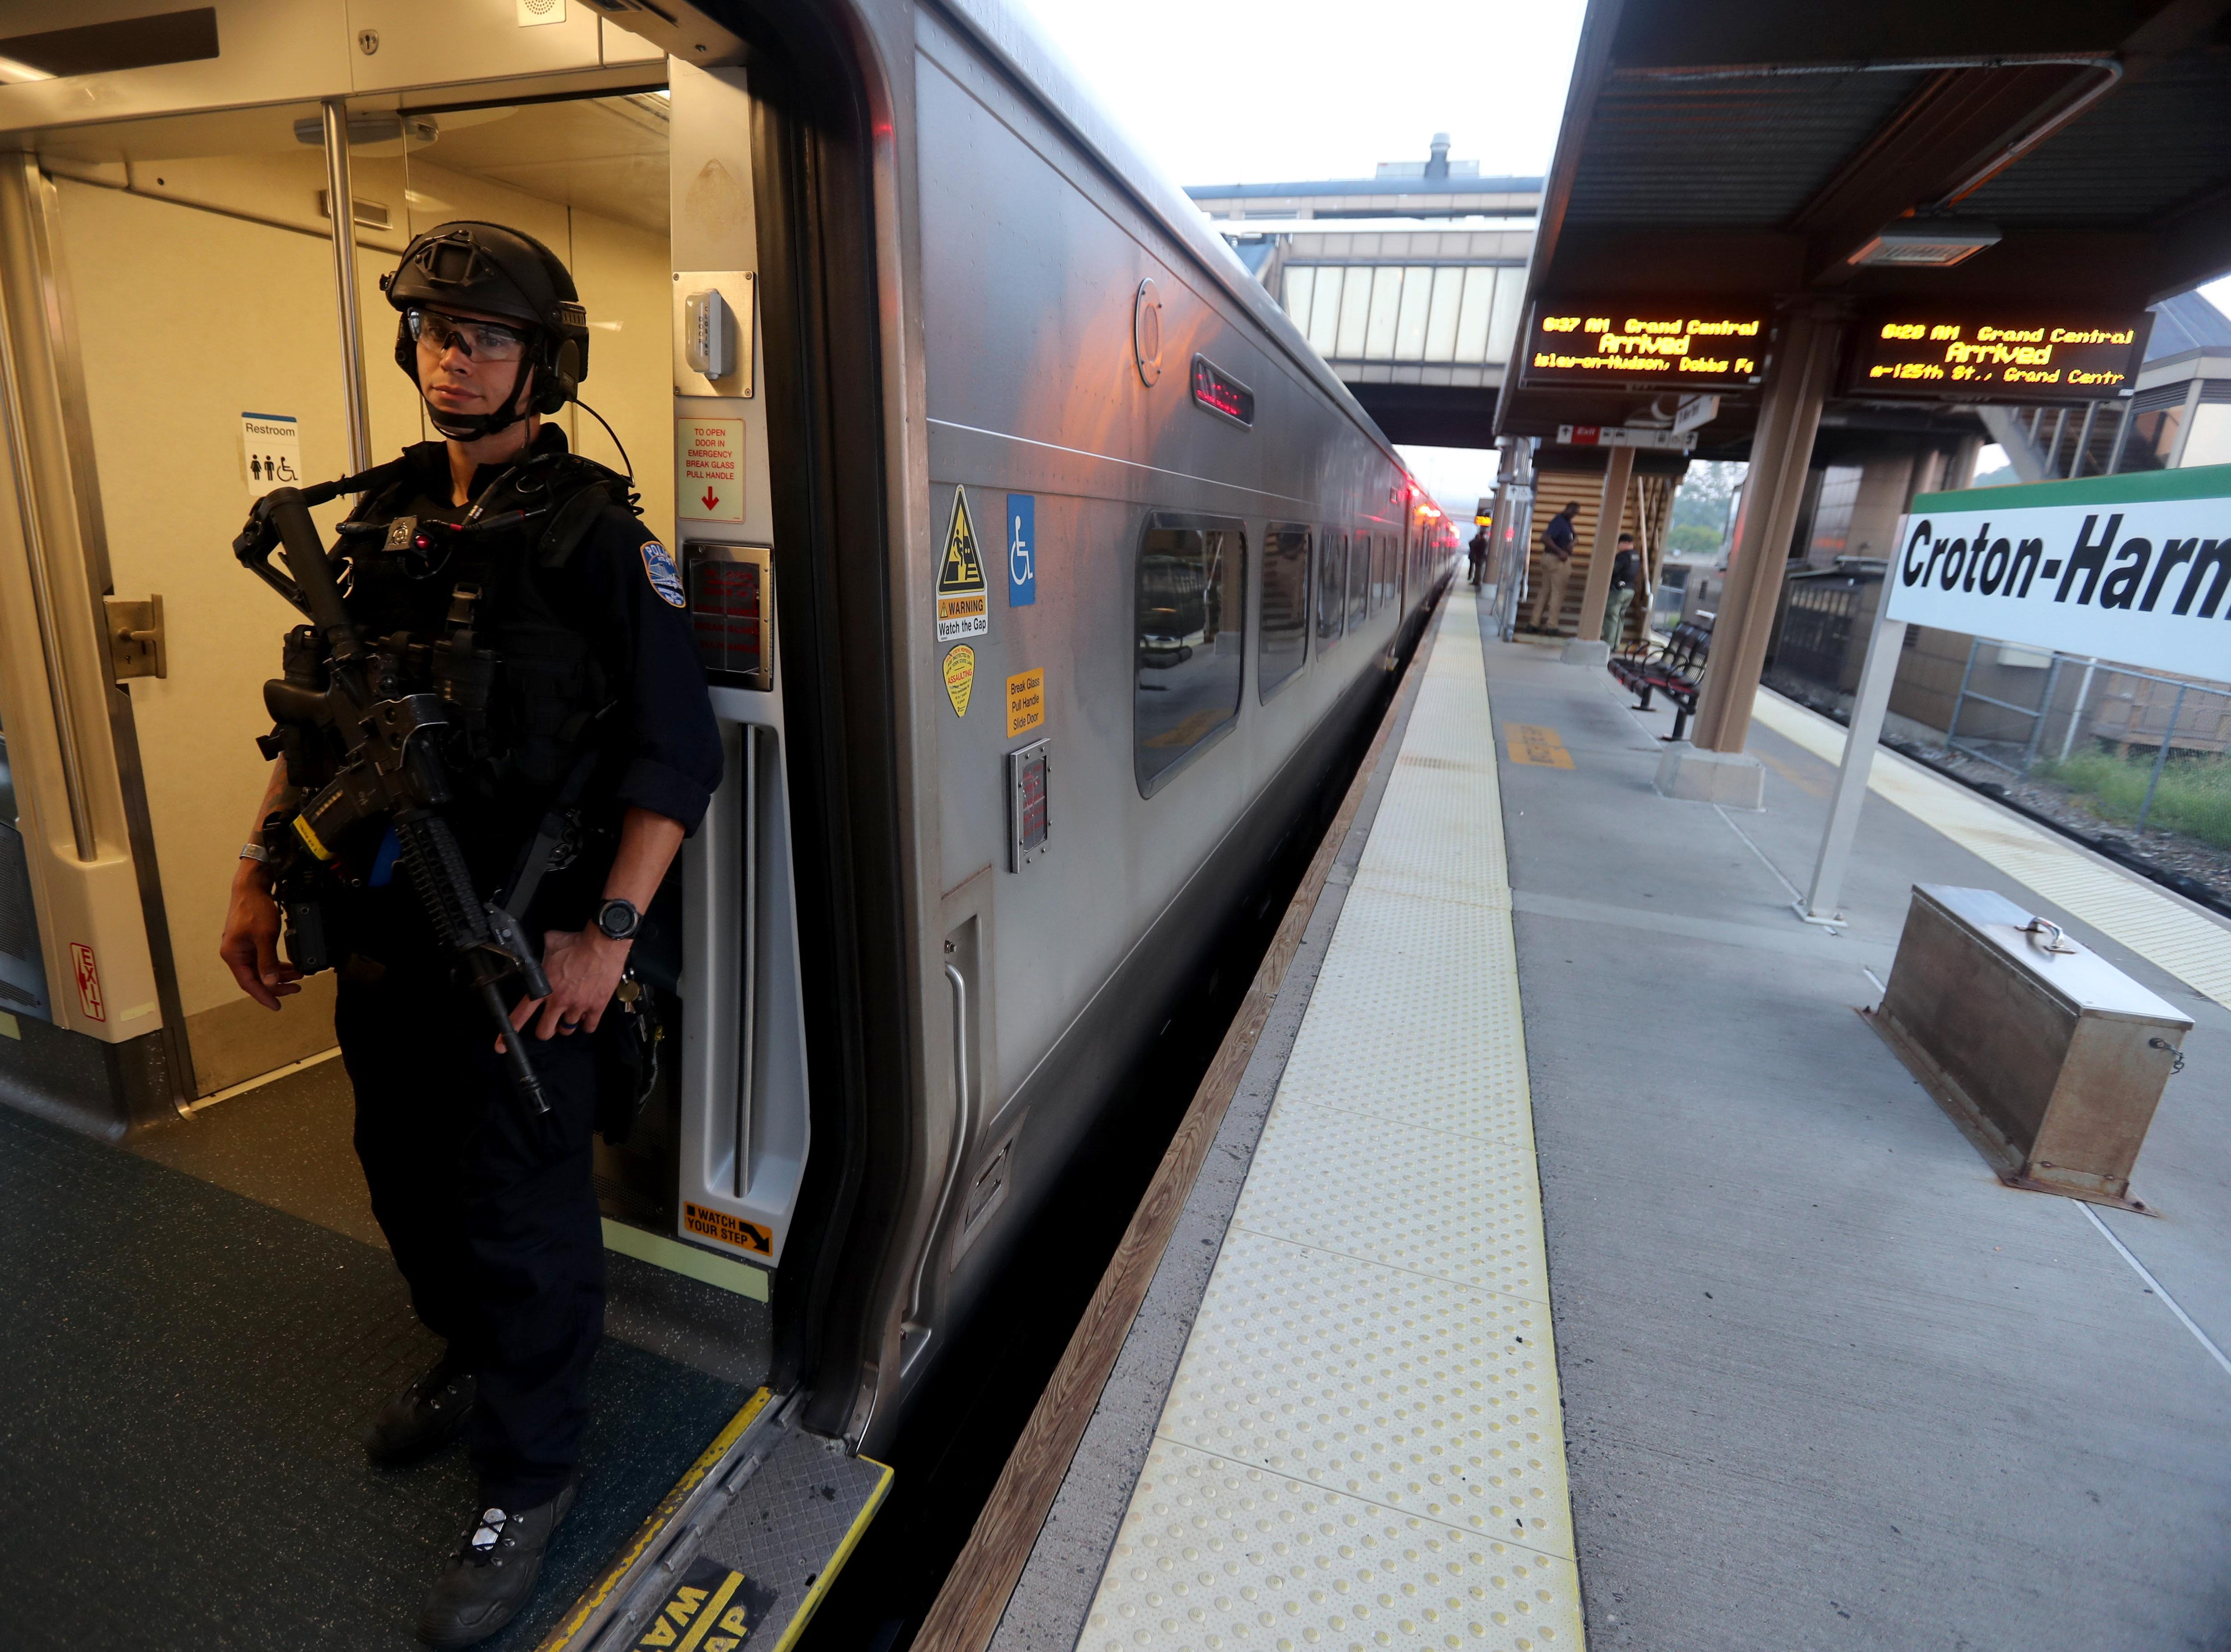 MTA police officer Adrian Torres stands on a New York City bound Metro-North train at the Croton-Harmon station during a multi-department safety drill Aug. 28, 2018. Officers from the MTA, Amtrak, Croton Harmon, New York State Police, TSA, and Department of Homeland Security departments took part in the drill during the morning rush hour. The drill involved heightened platform patrols, increased security presence onboard trains, explosives detection canine sweeps, and counter-surveillance measures. Similar drills were also held at several other Hudson Line stations during the morning commute.